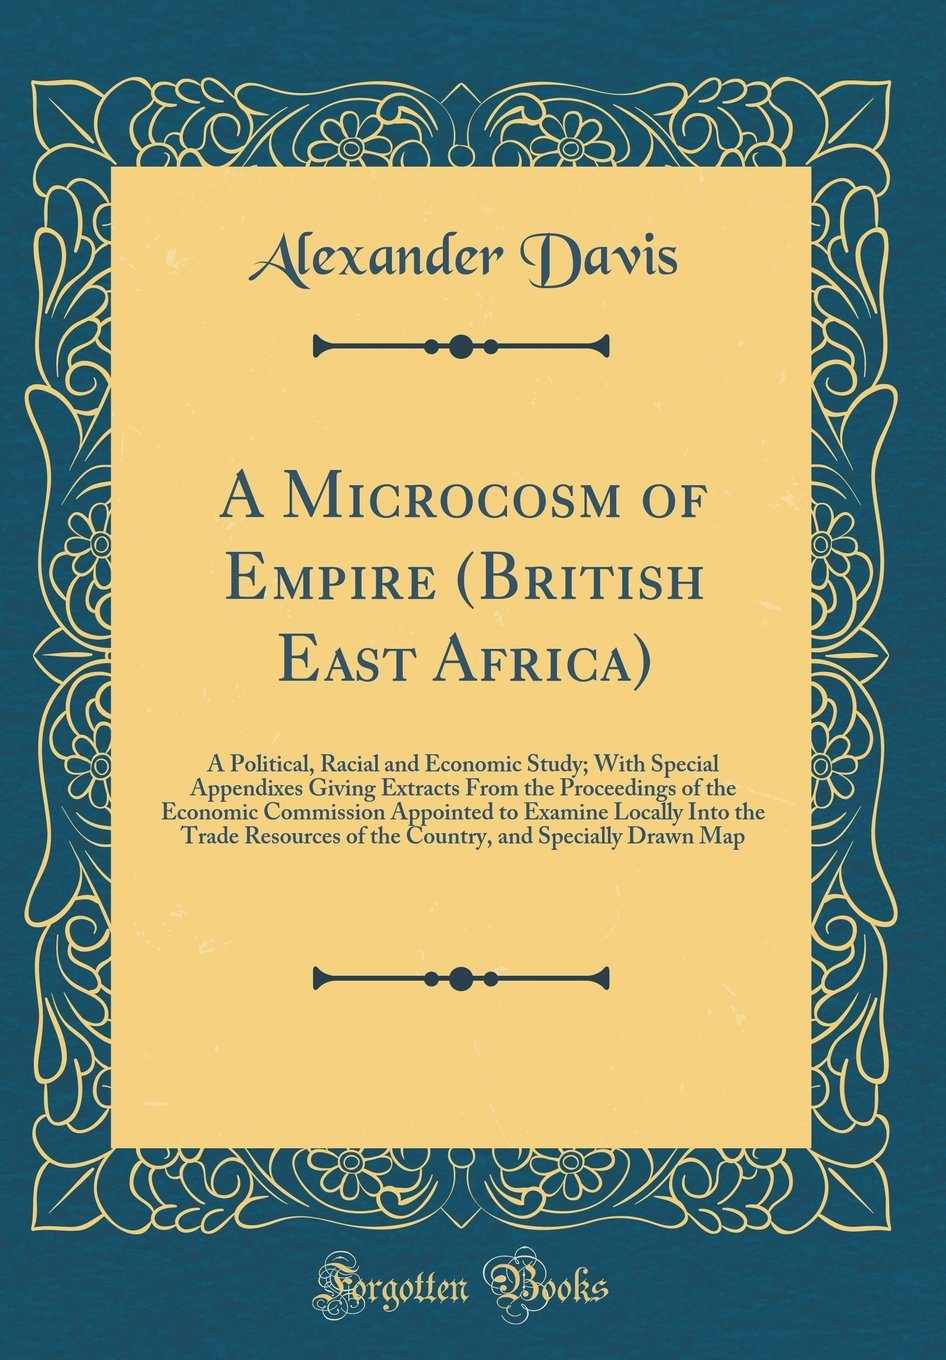 Download A Microcosm of Empire (British East Africa): A Political, Racial and Economic Study; With Special Appendixes Giving Extracts From the Proceedings of ... Trade Resources of the Country, and Speciall pdf